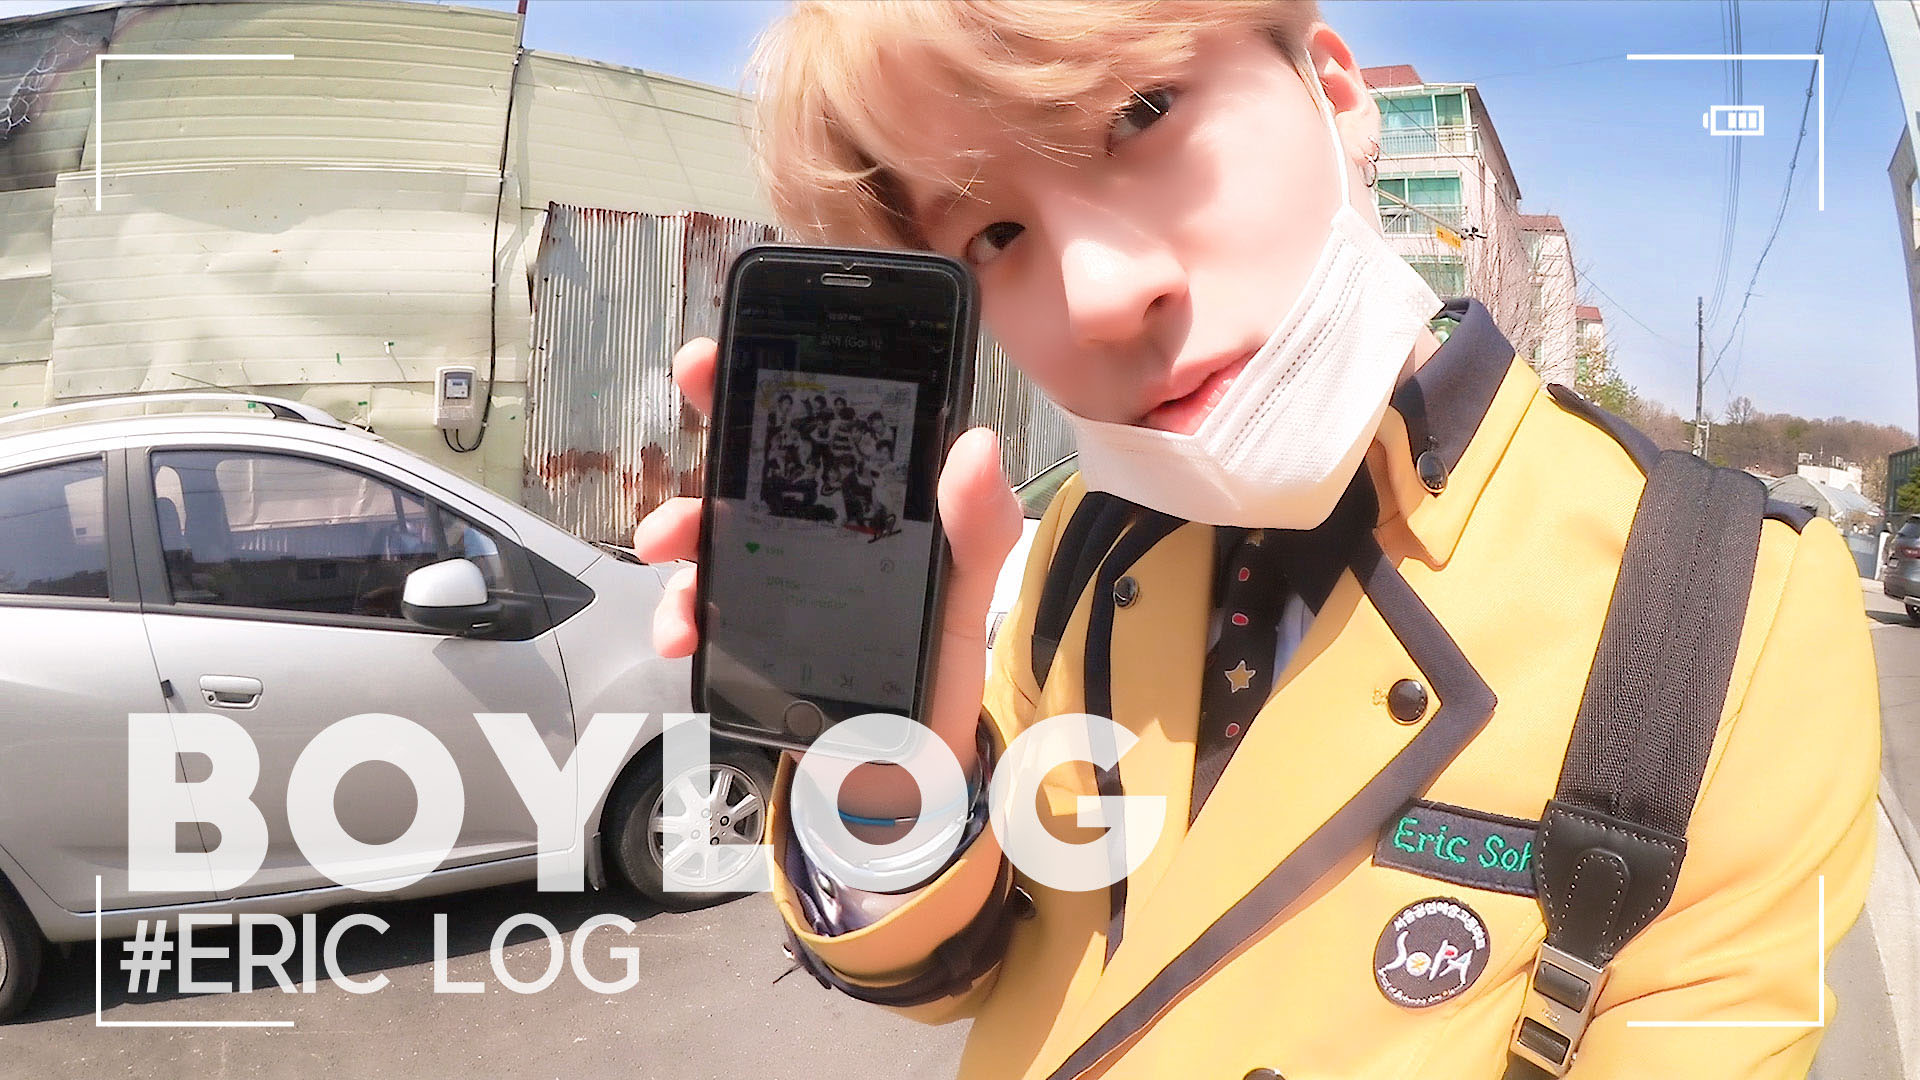 [BOYLOG] ERIC Cam | Let's go to school